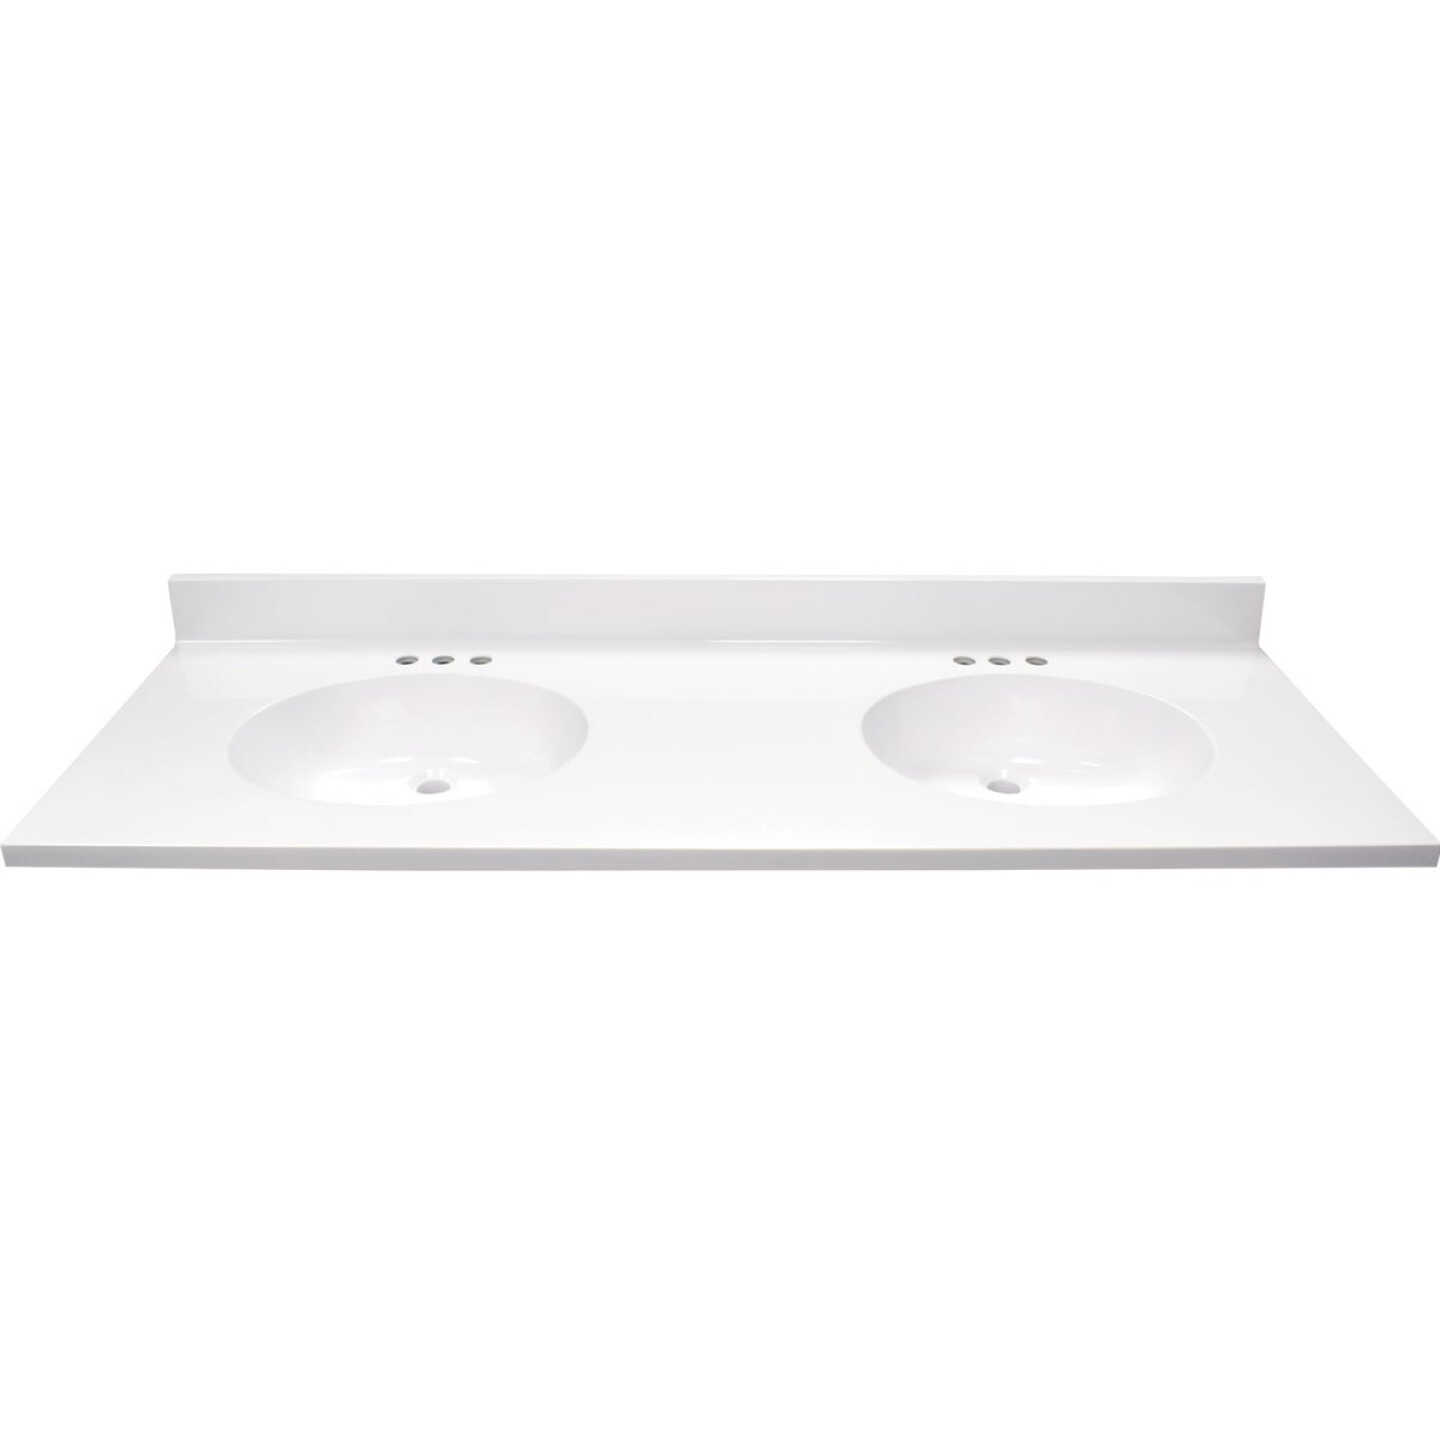 Modular Vanity Tops 61 In. W x 22 In. D Solid White Cultured Marble Flat Edge Vanity Top with Oval Bowl Image 2